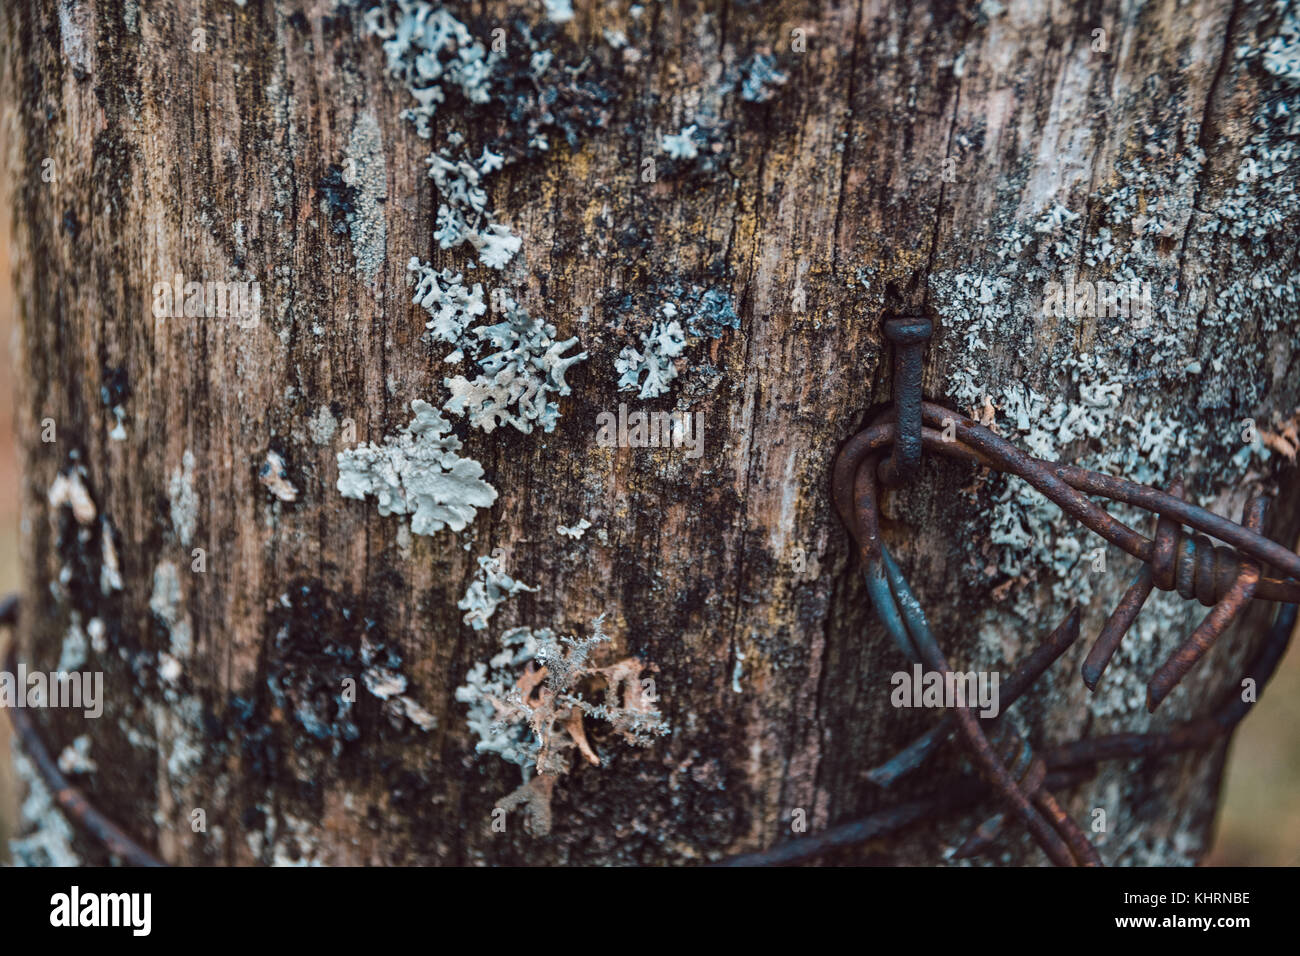 Close-Up Of Reindeer Moss Lichen Or Cladonia Rangiferina Growing On Old Wooden Fence Post With Rusty Nails - Stock Image